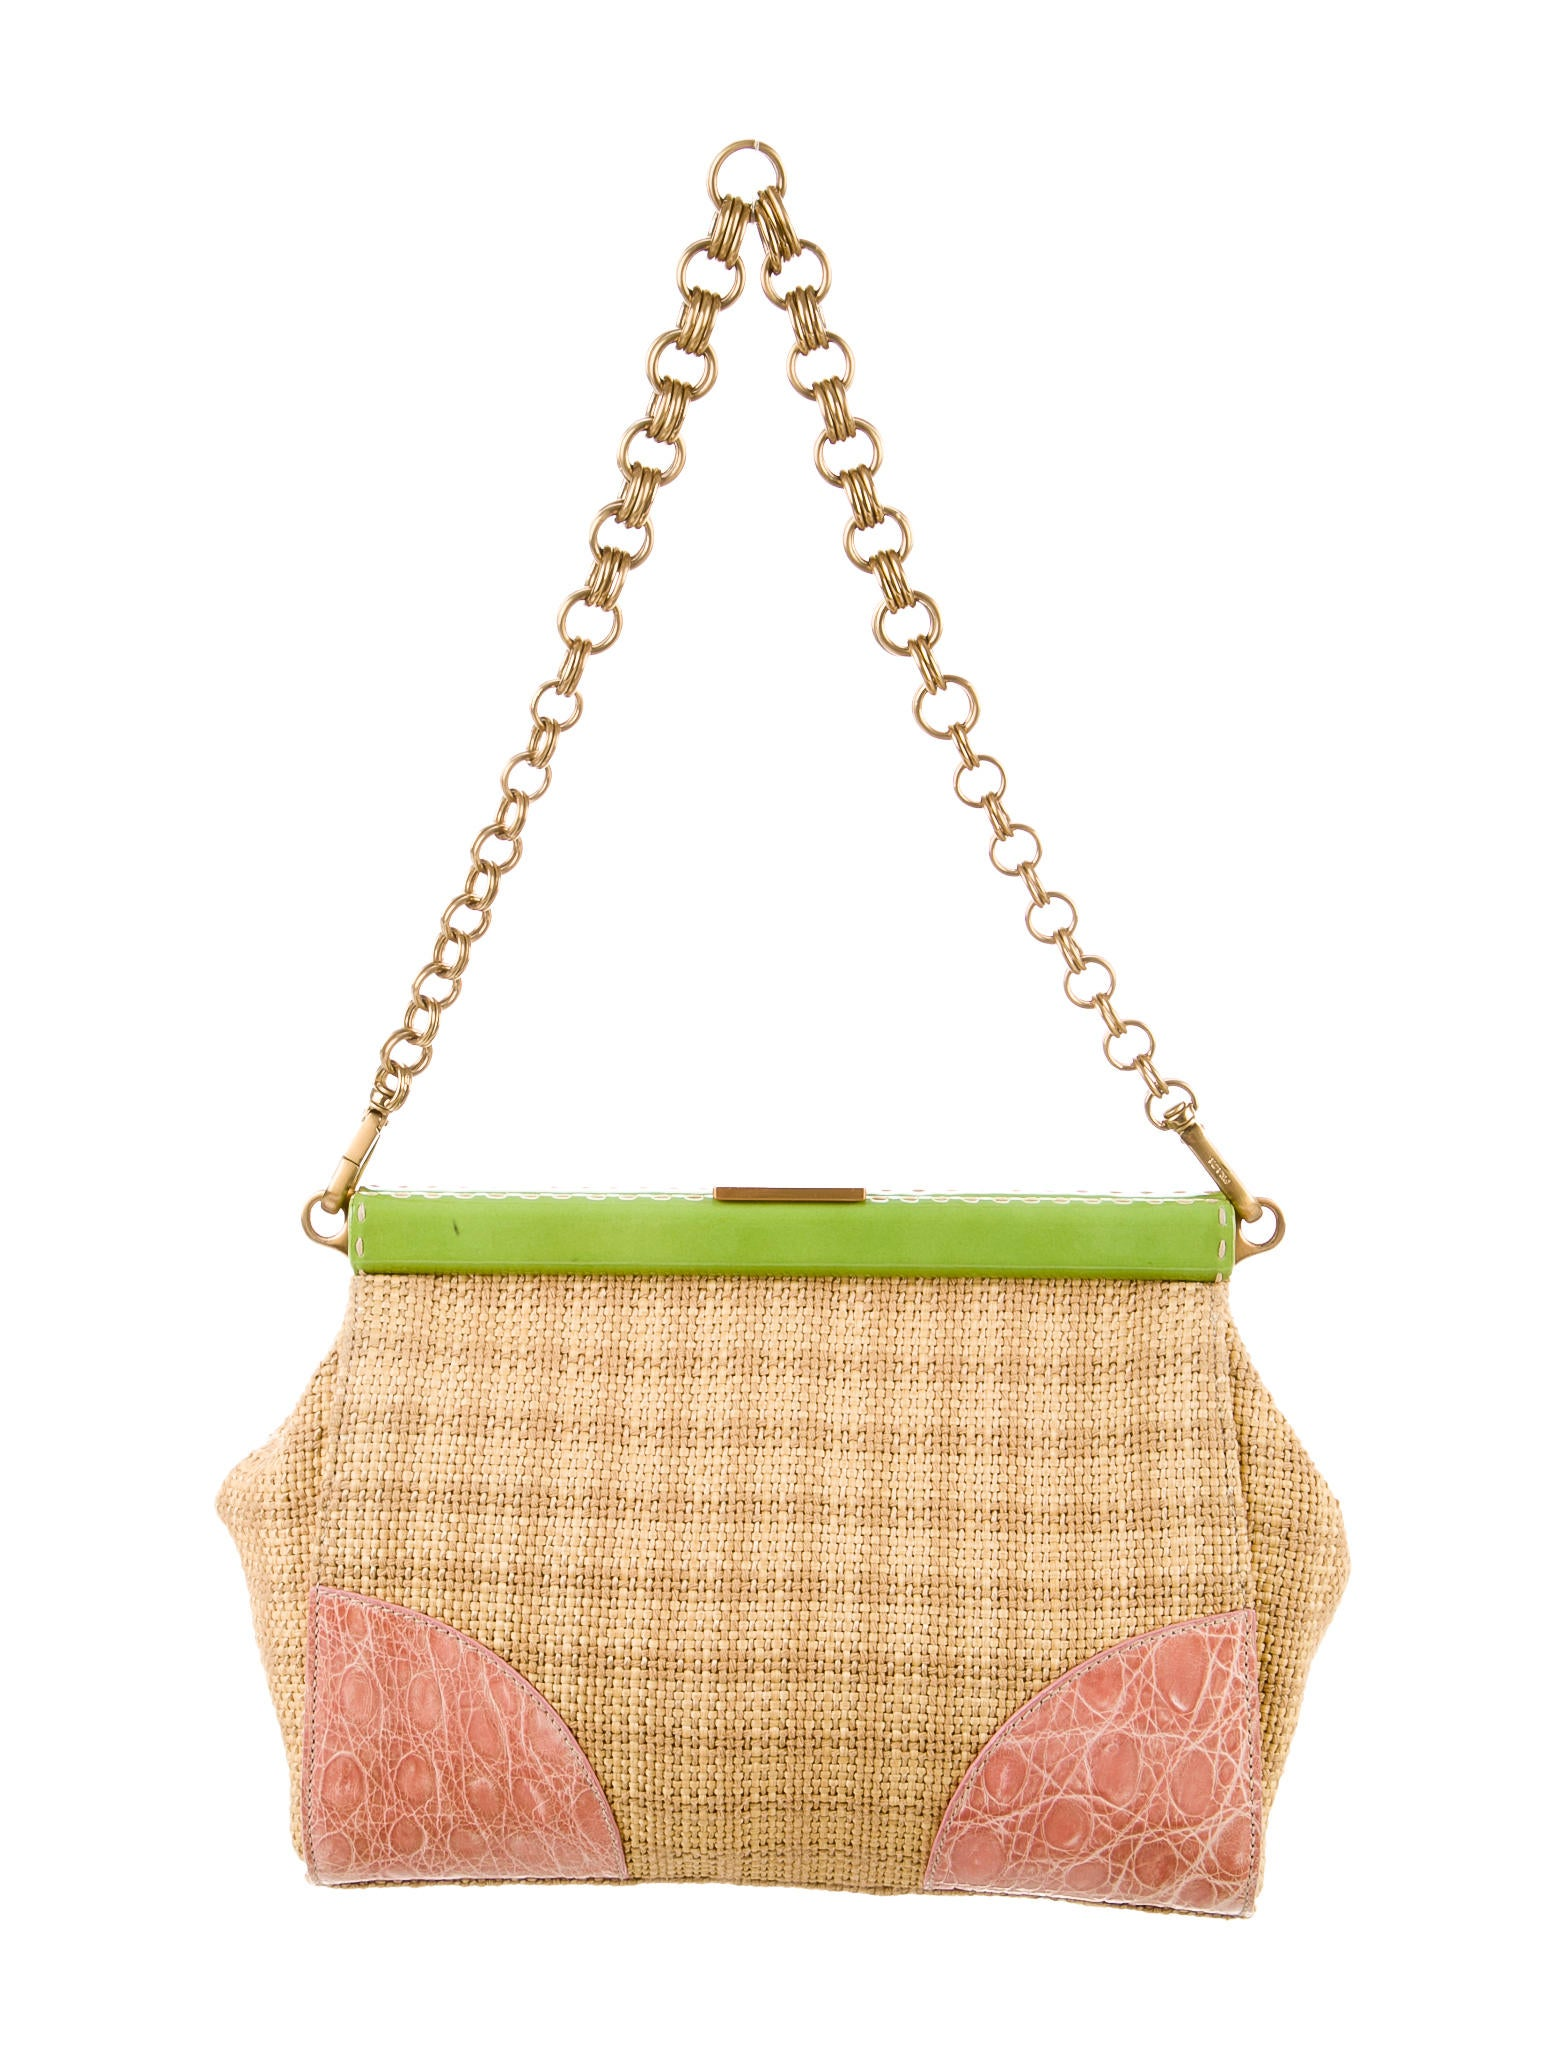 prada alligator straw shoulder bag